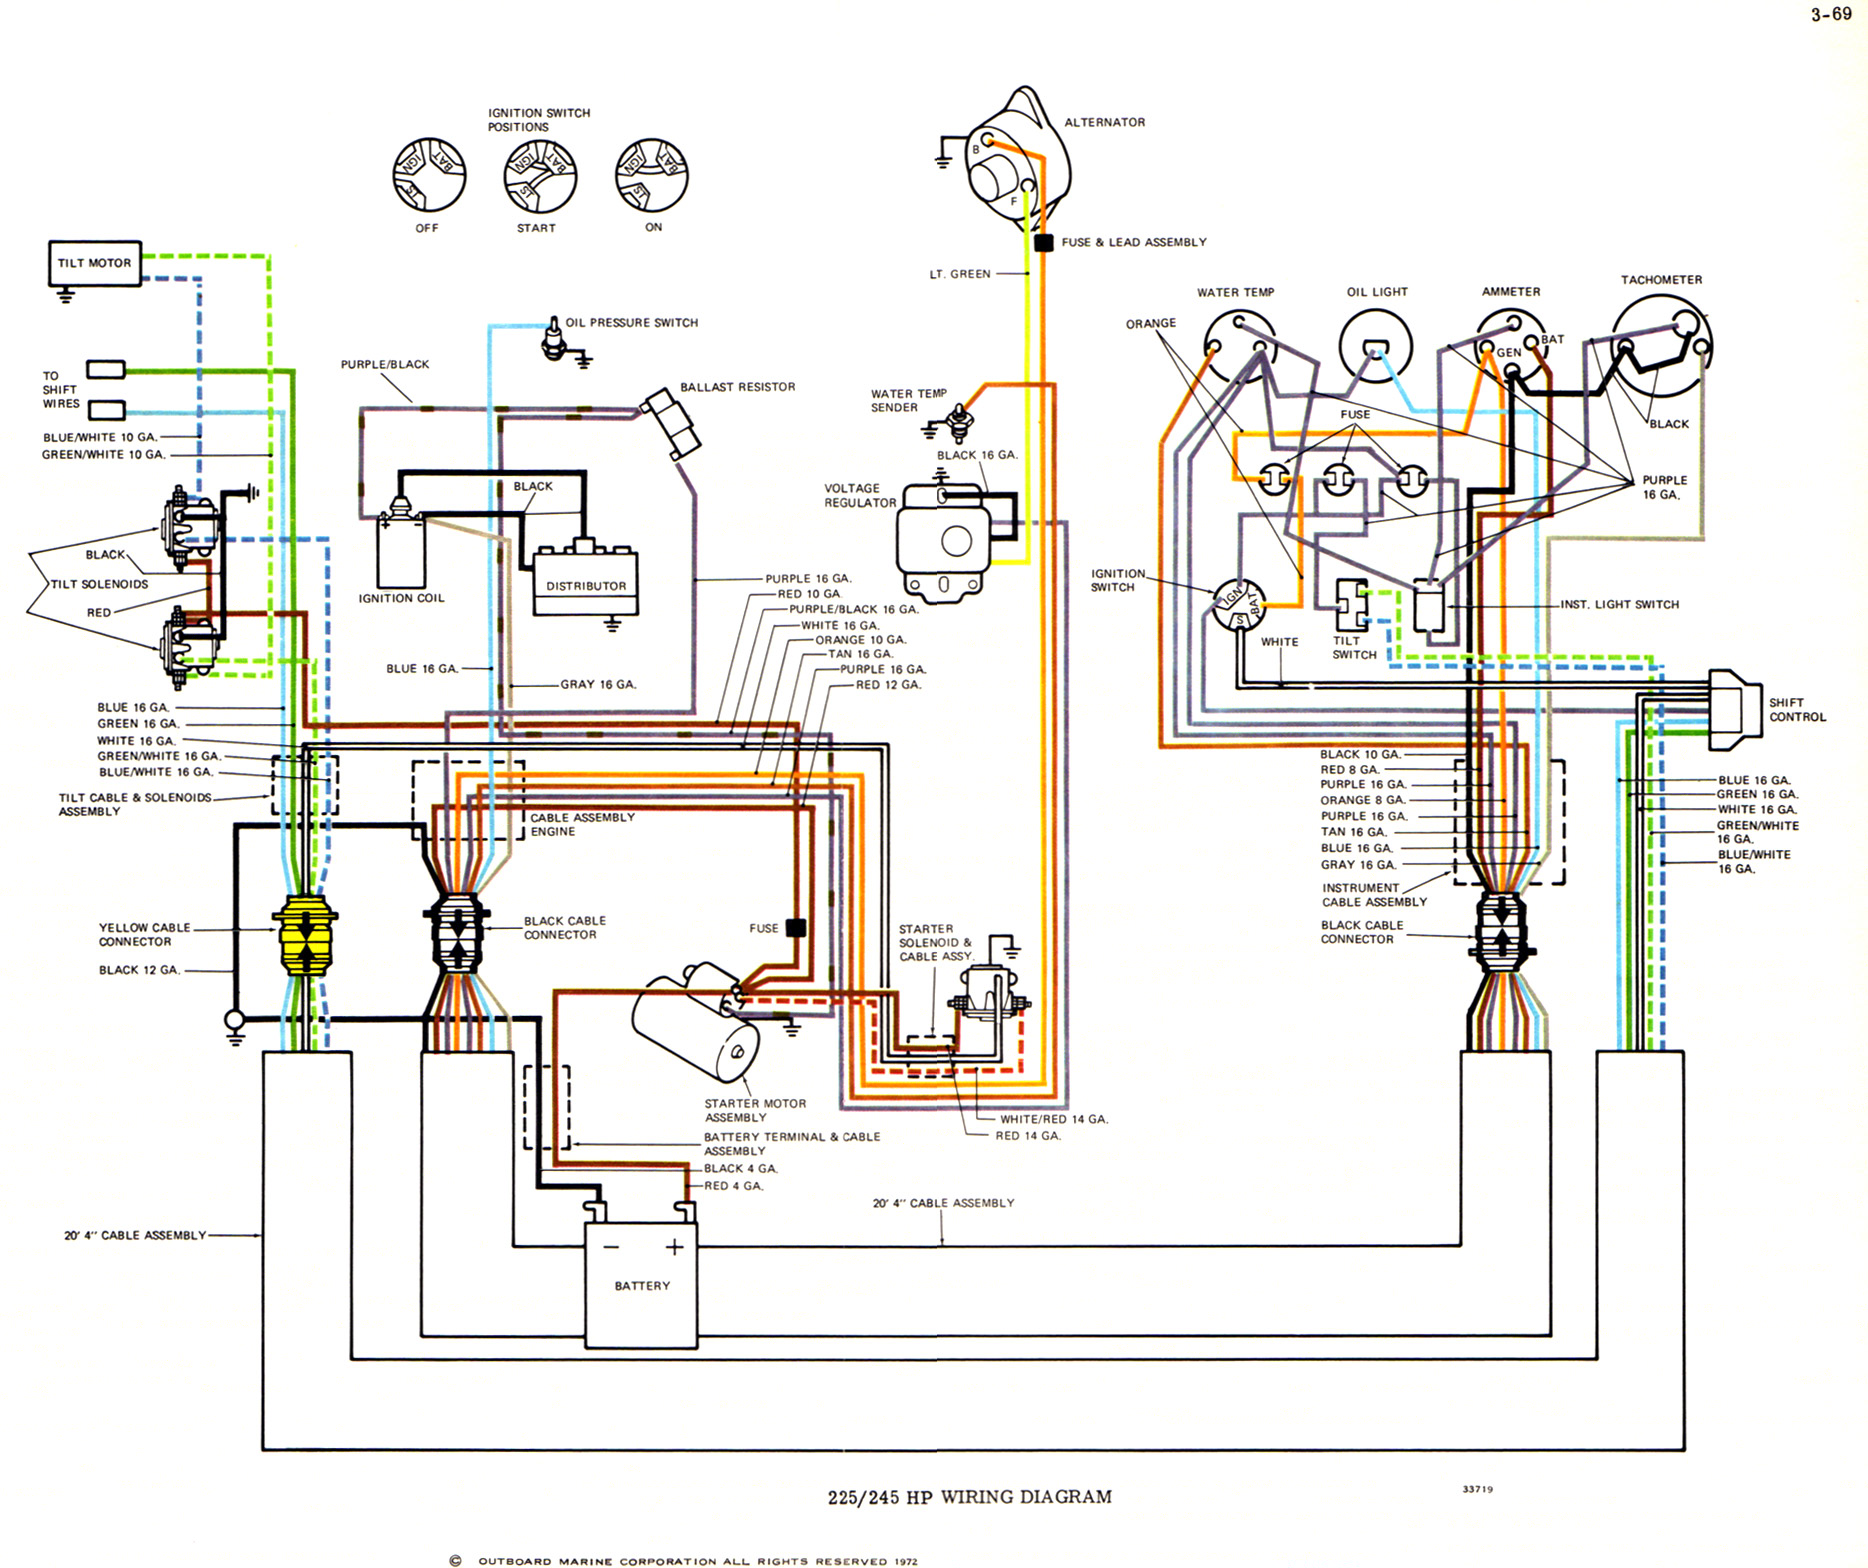 73_OMC_V8_all_big omc boat technical info marine wiring diagrams at fashall.co